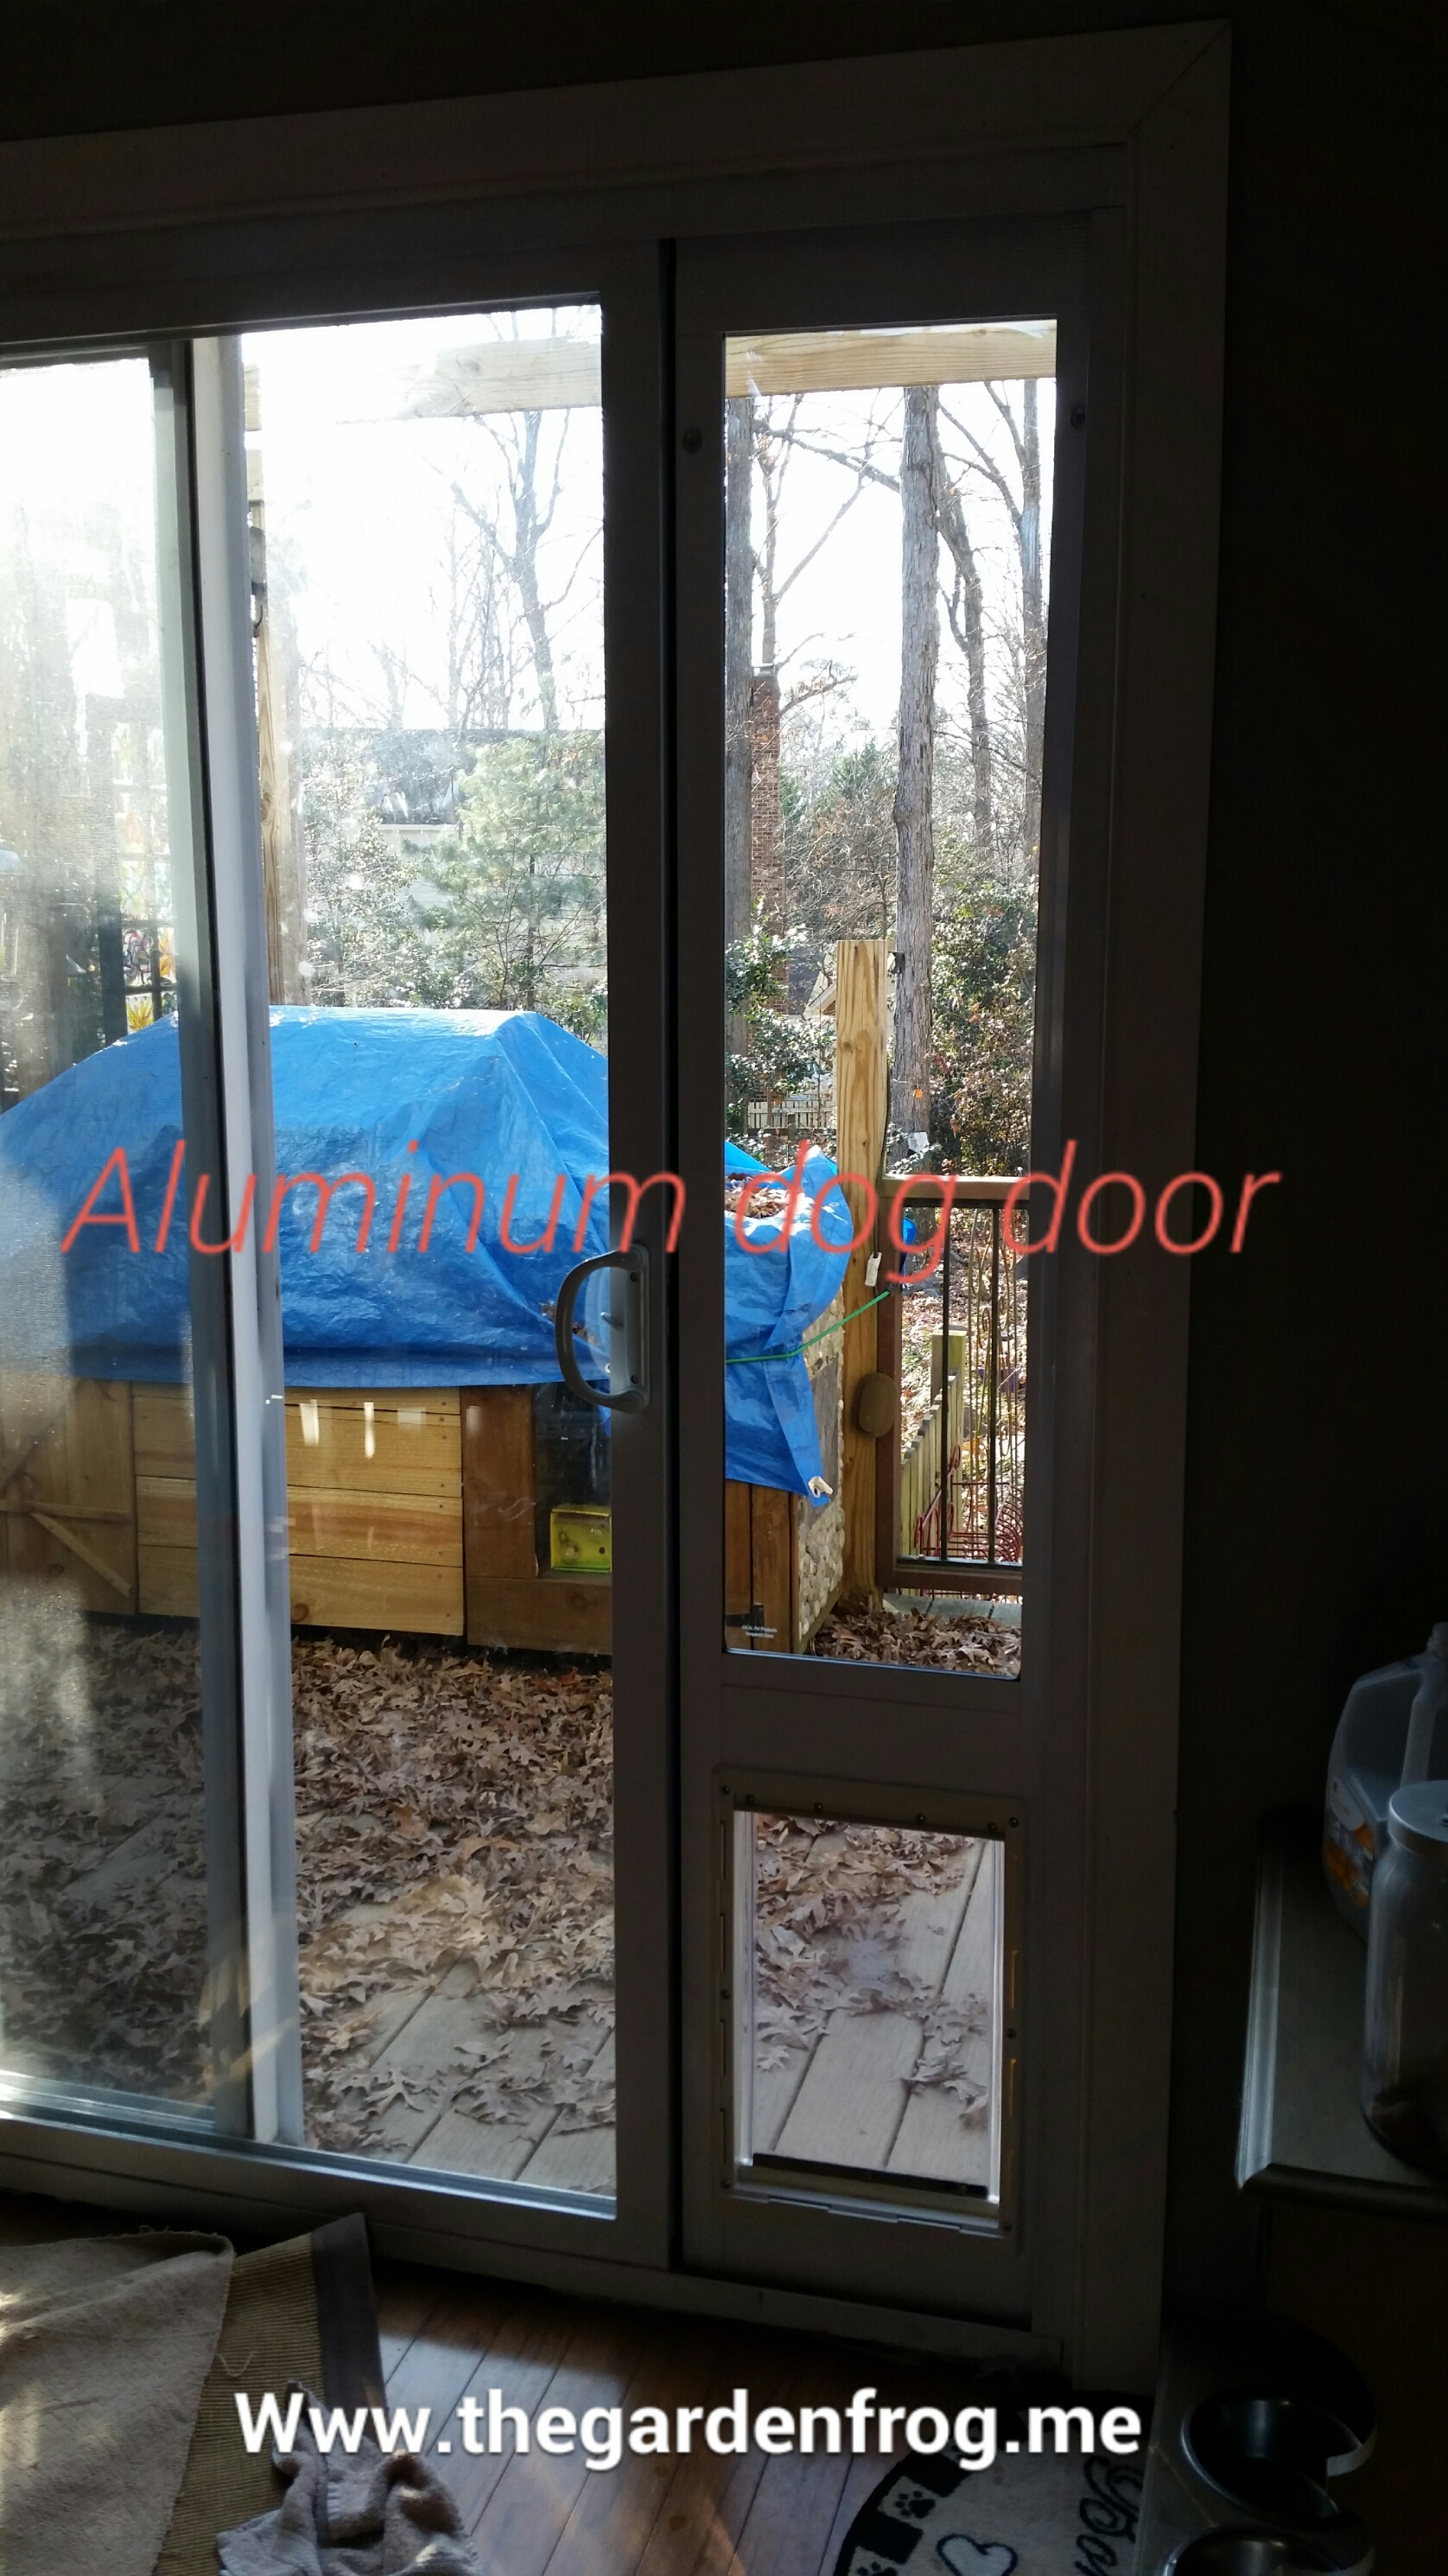 How to install and modify an aluminum ideal pet patio door for home depot doggy patio doggy door aluminum patio dog door planetlyrics Gallery